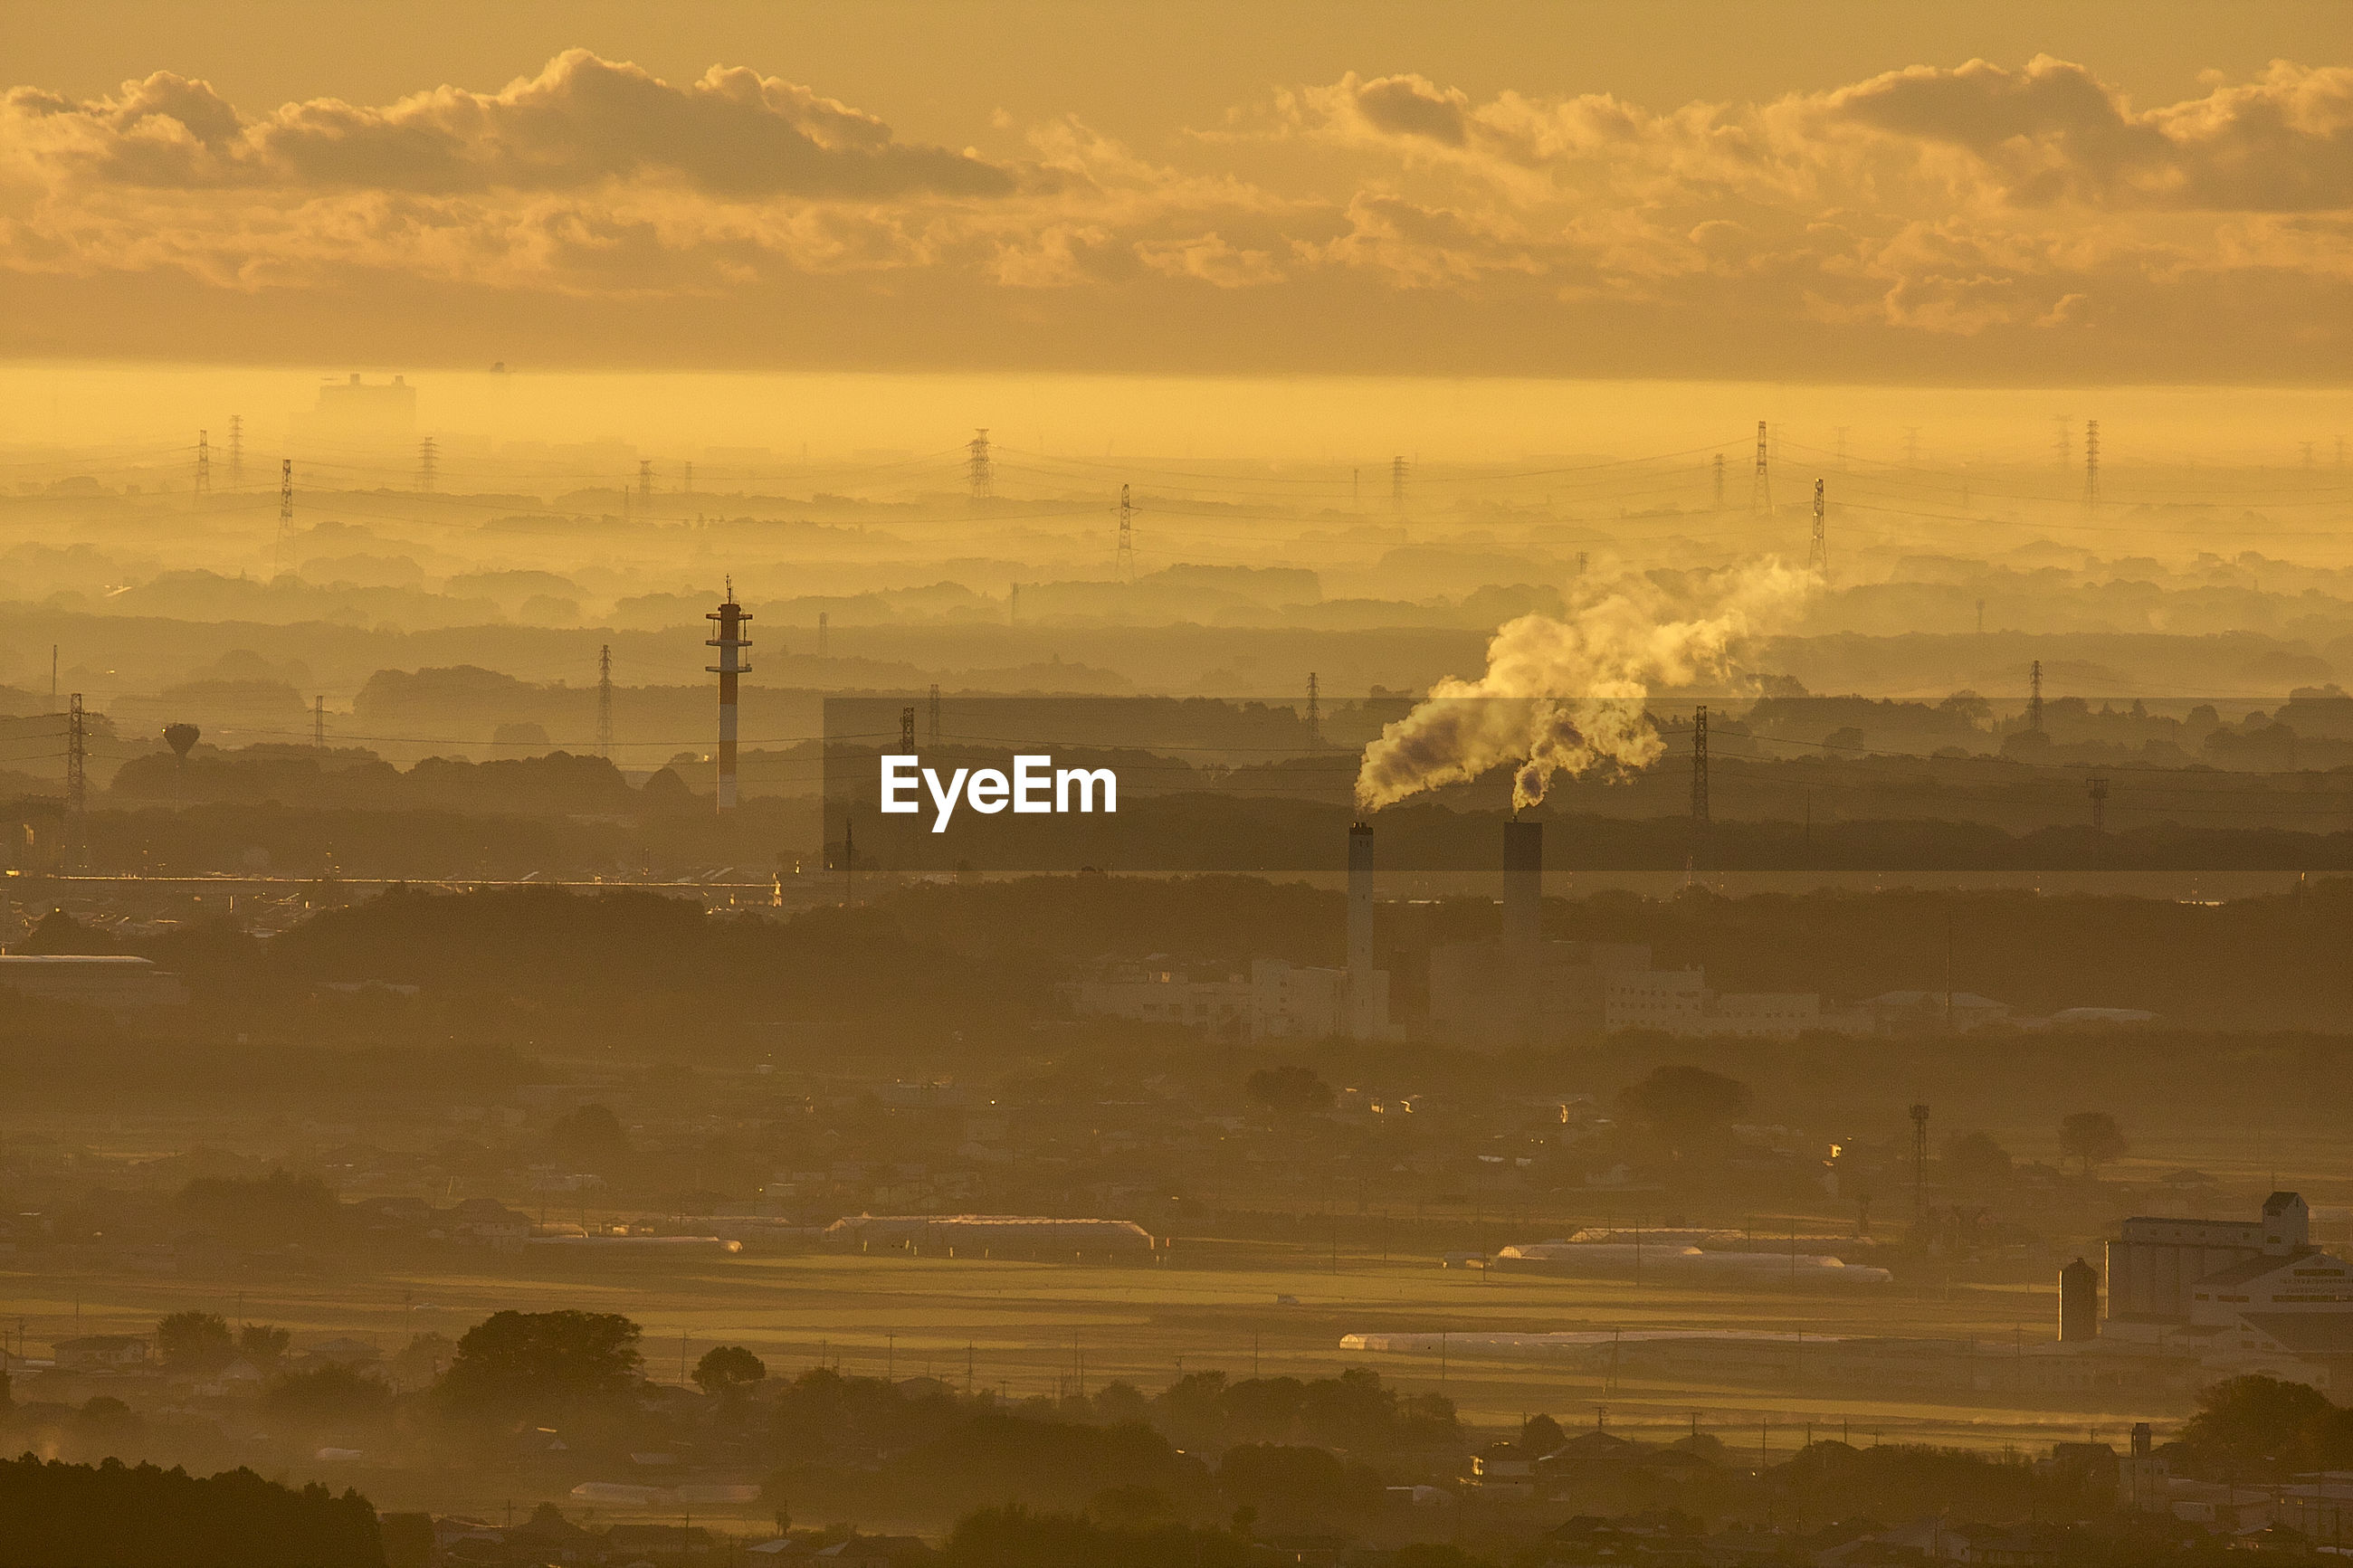 Aerial view of smoke emitting from factory against cloudy sky during sunset